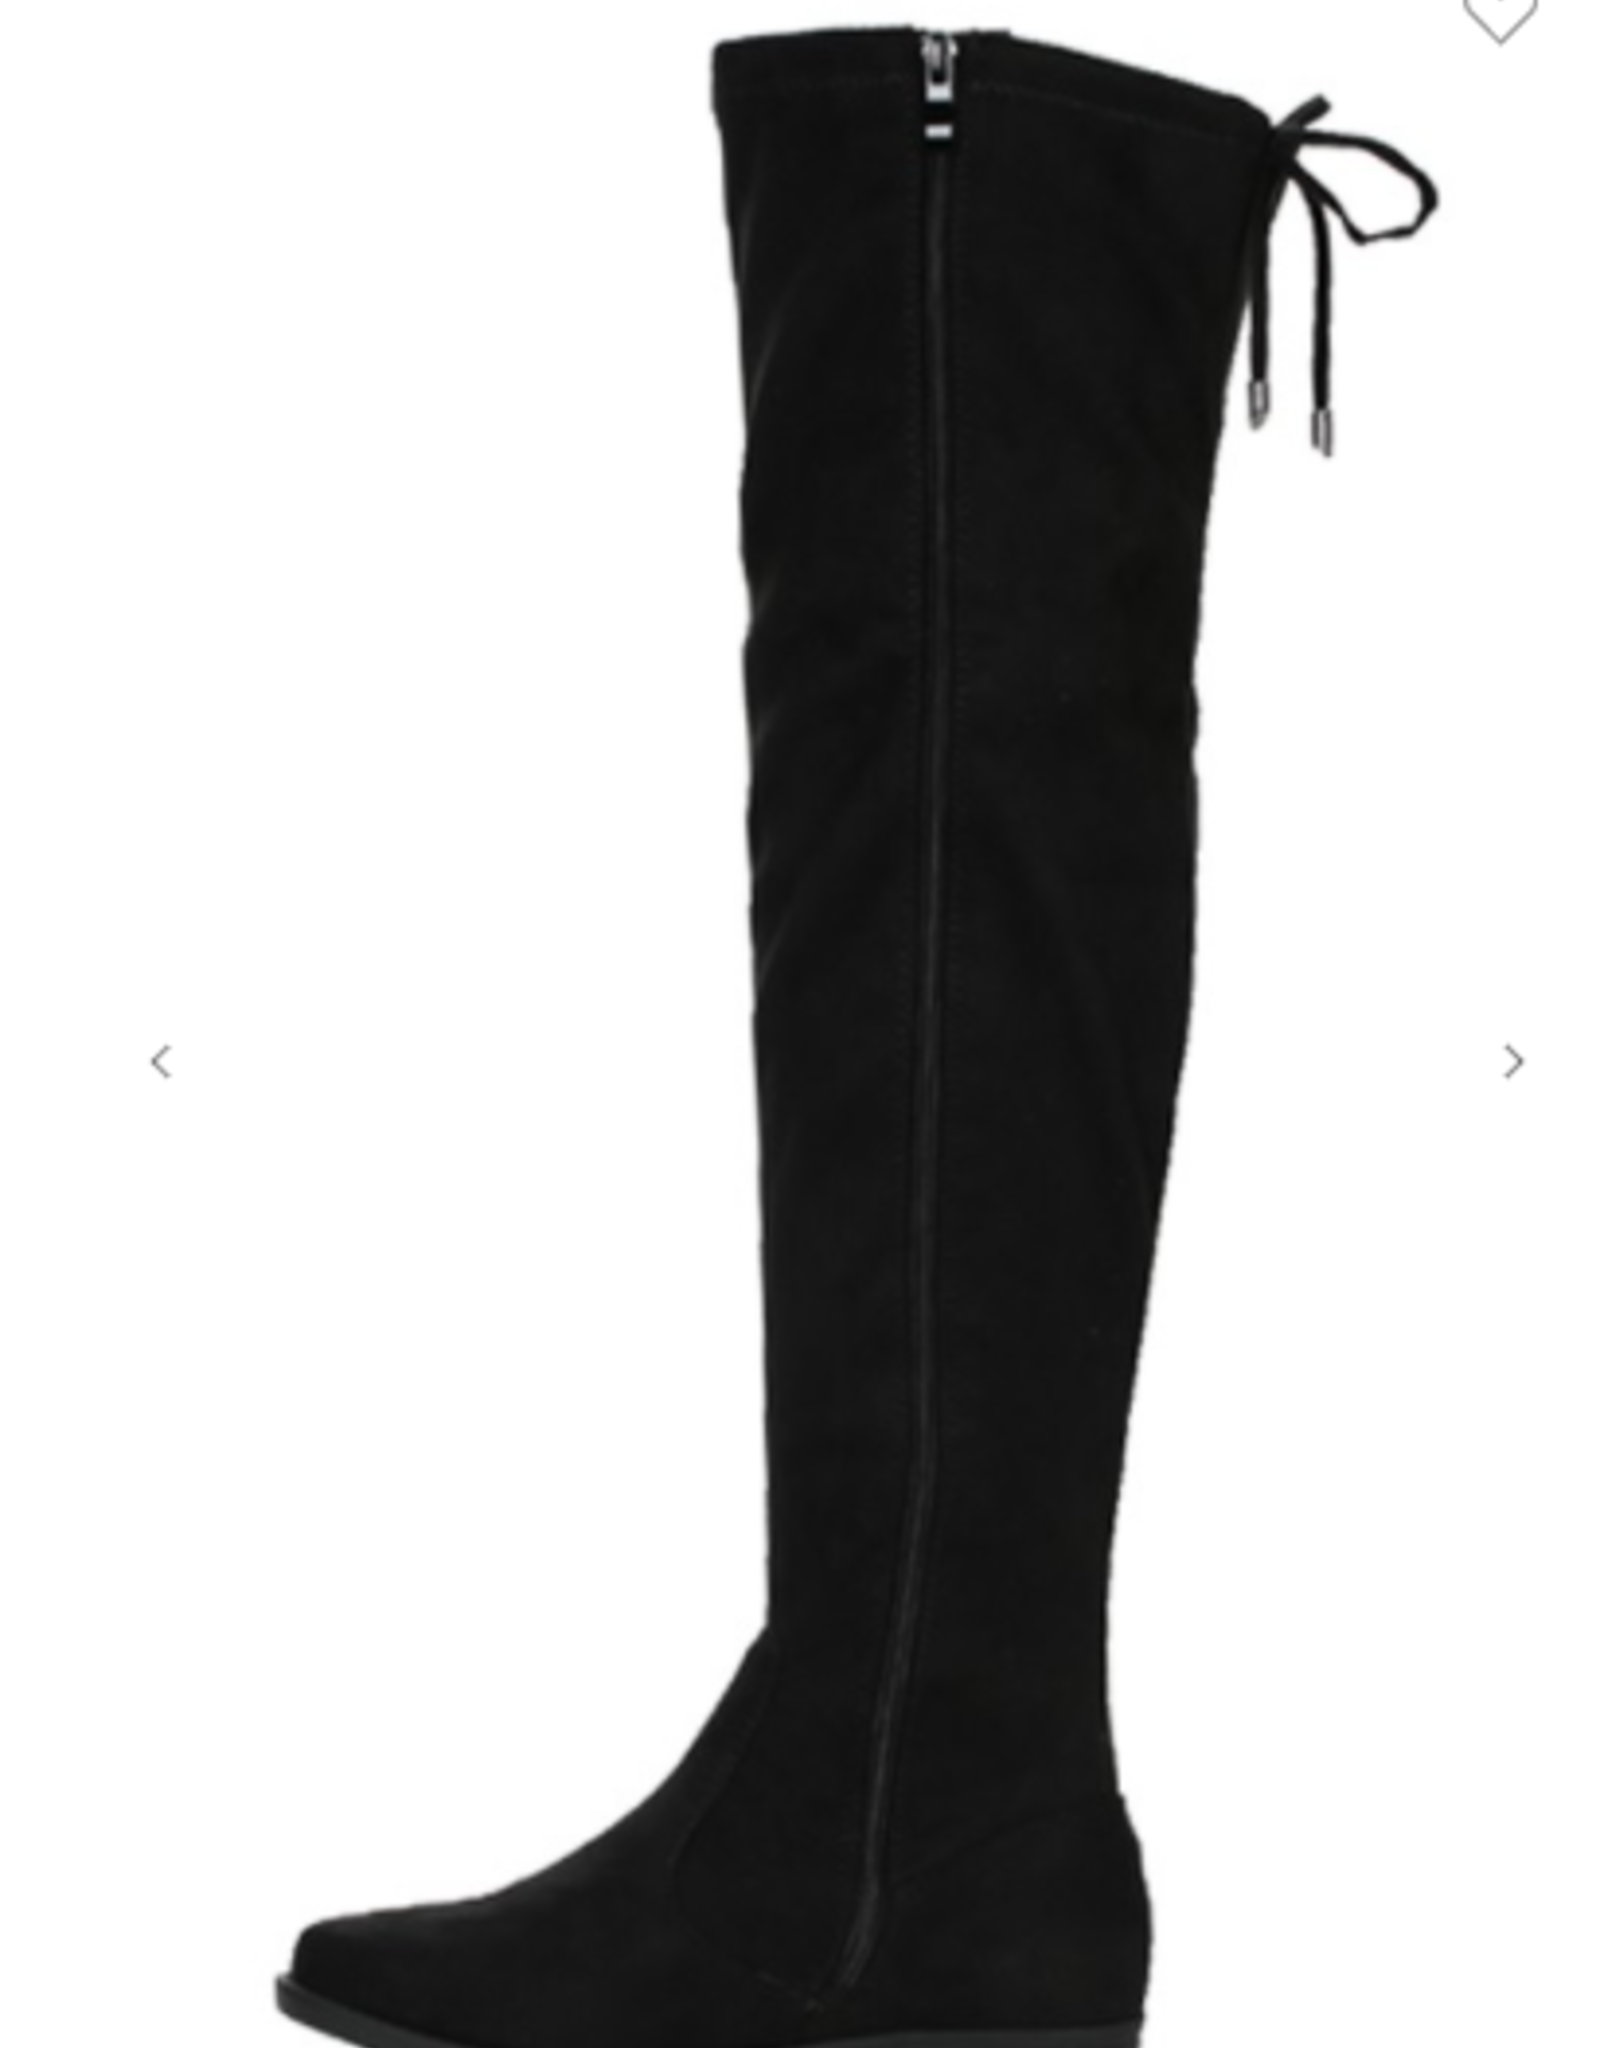 Drawstring tie over the knee boot